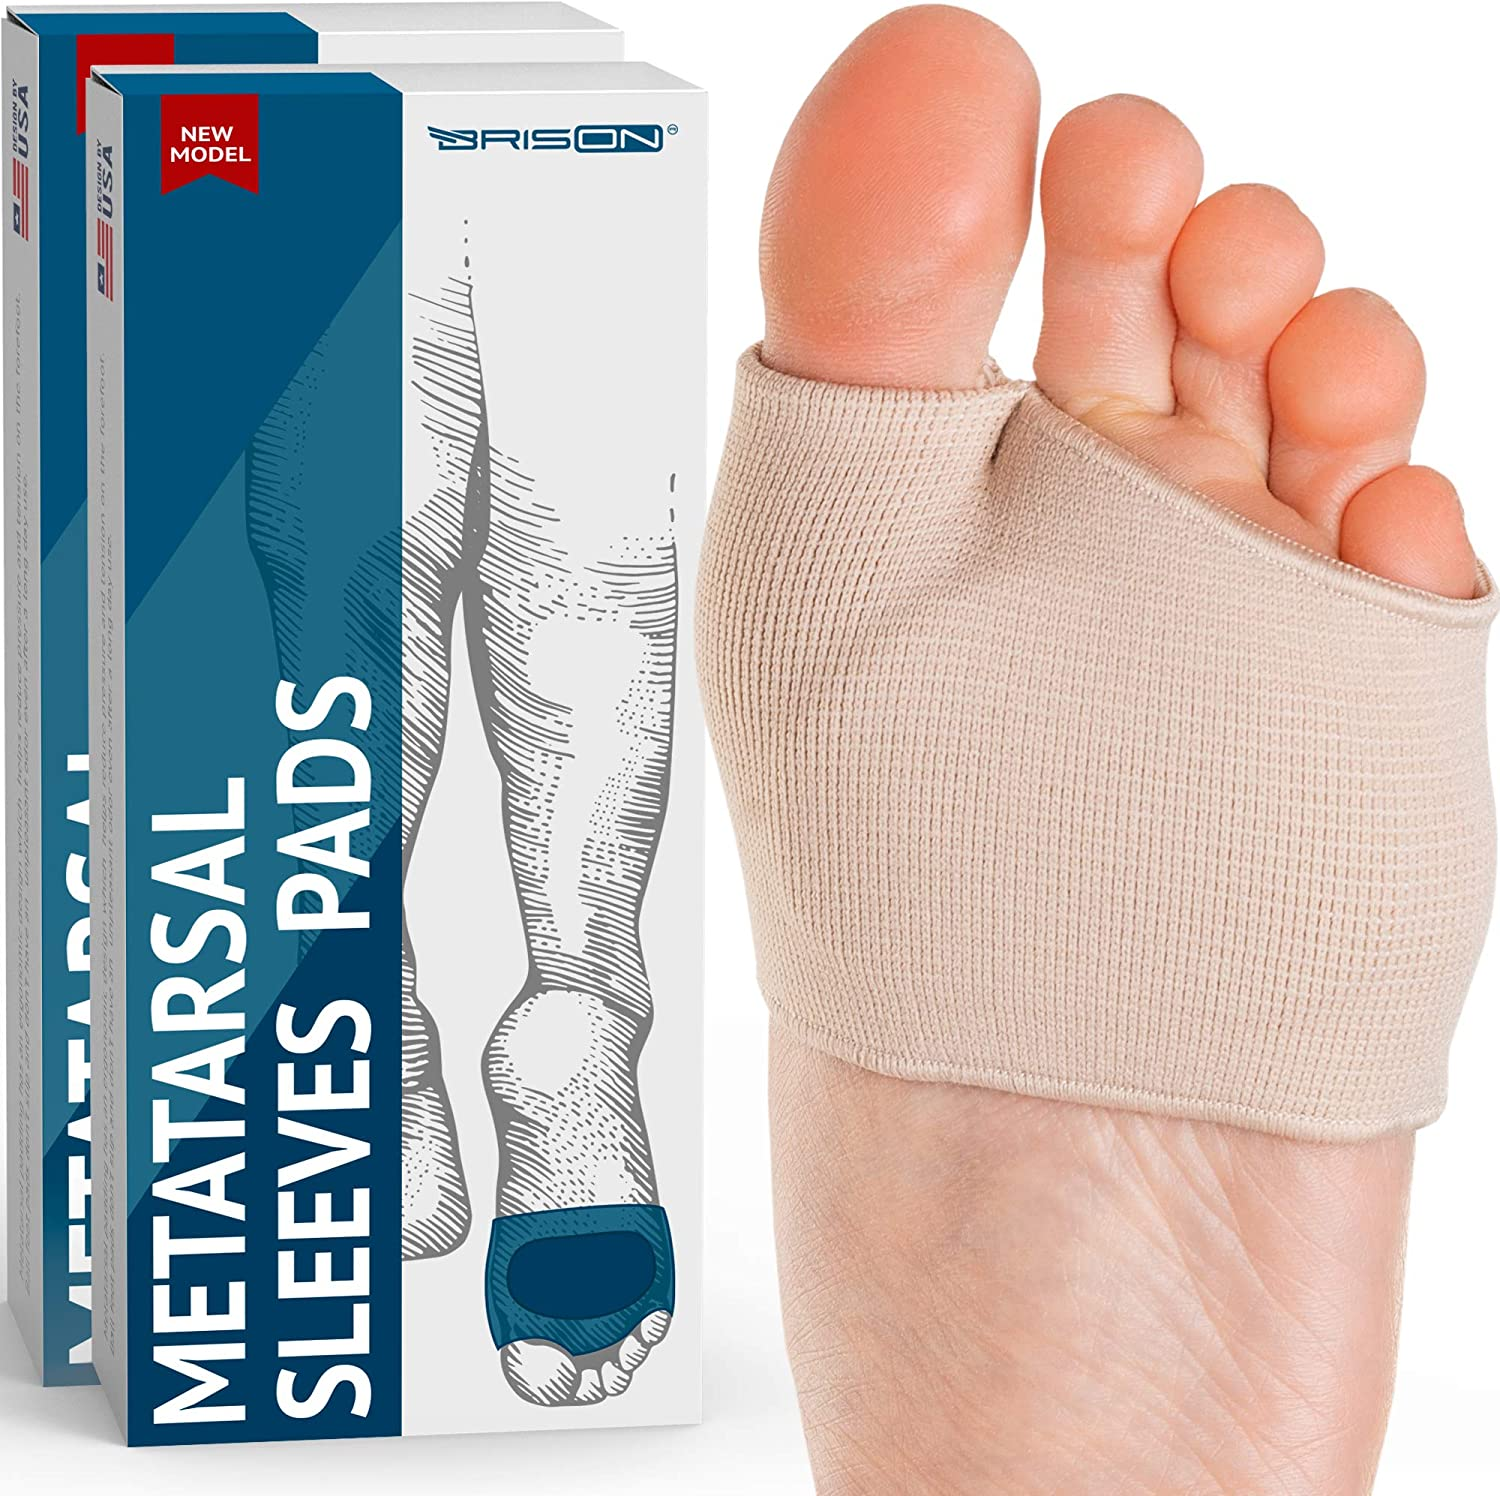 Temiart Felt Metatarsal Pads 1//4 Thick- 6Pack Ball of Foot Cushions for Women /& Men Foot Pain Relief